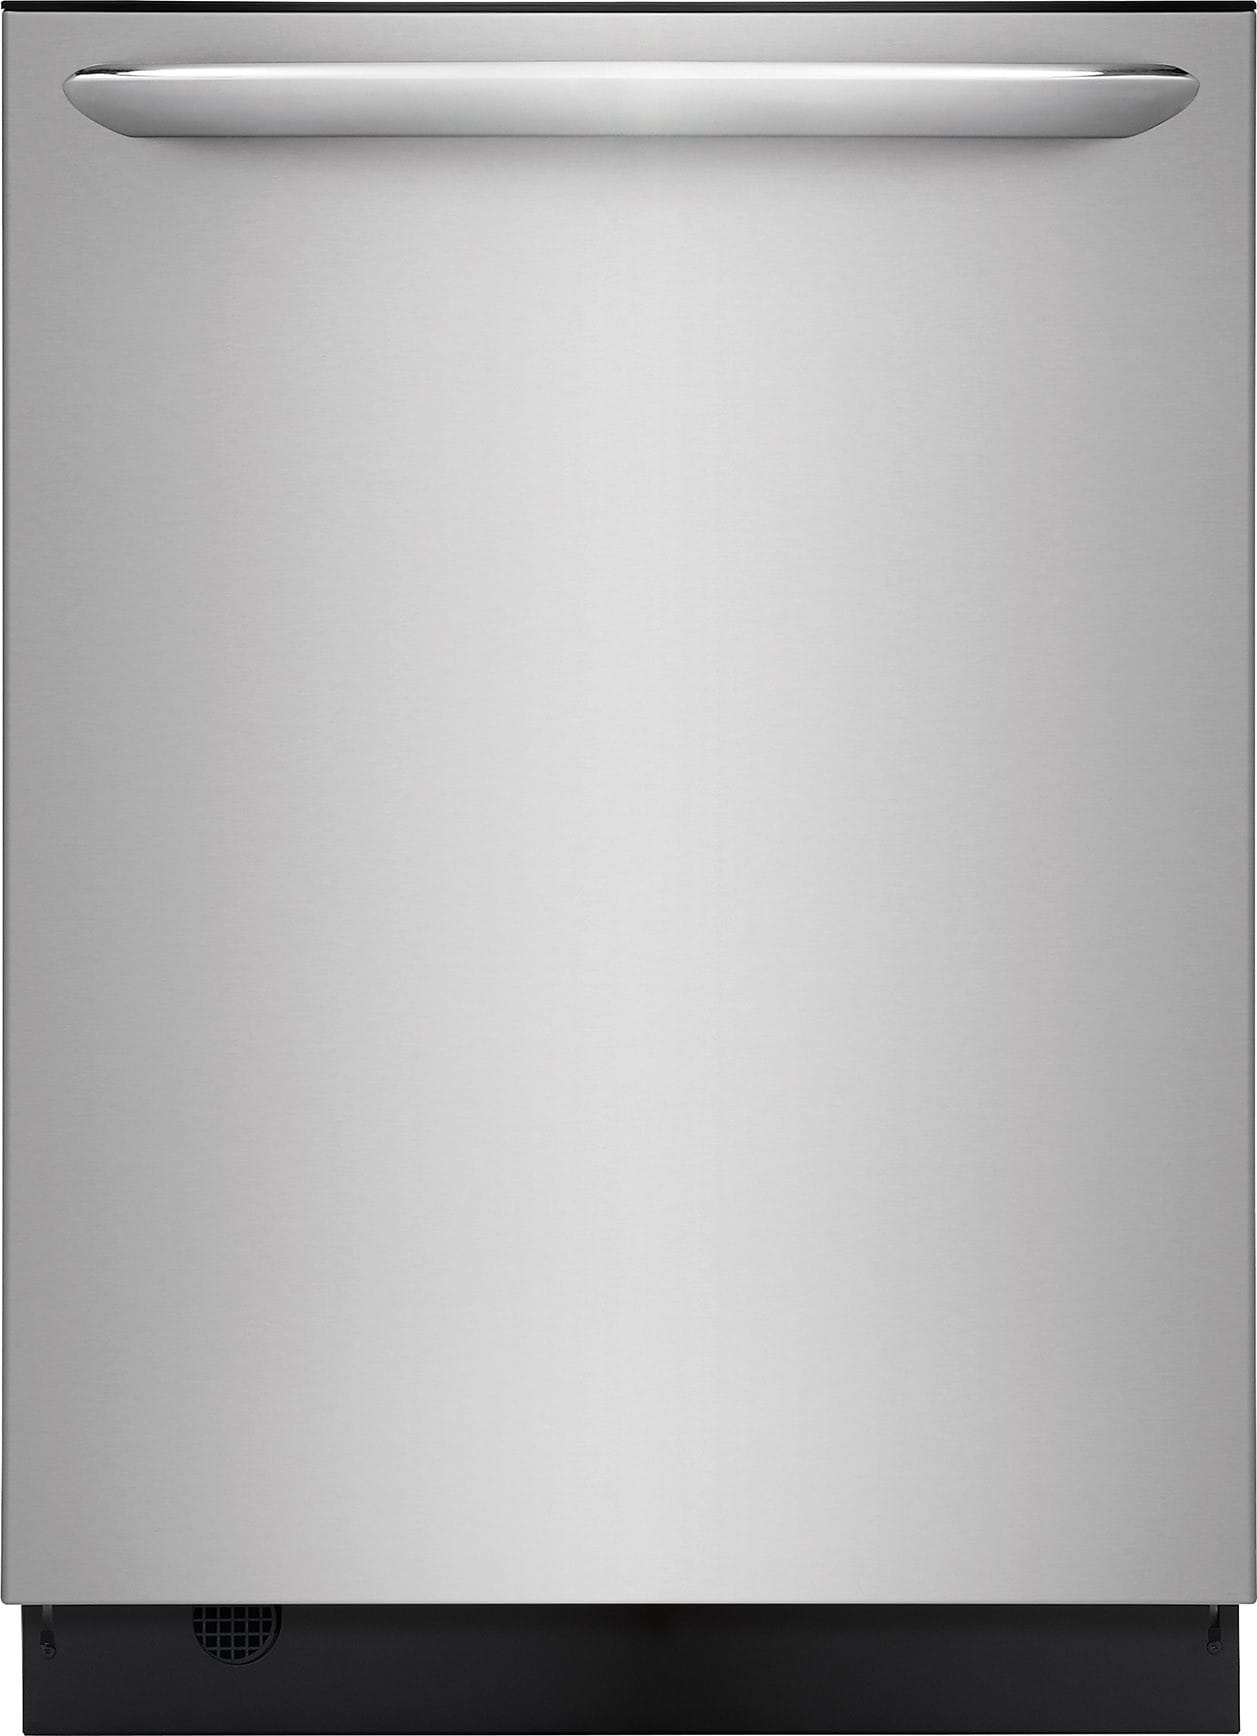 Frigidaire fgid2479sf fully integrated dishwasher with orbitclean frigidaire fgid2479sf fully integrated dishwasher with orbitclean wash system nsf sanitize 3rd rack quick clean dishsense smudge proof evendry rubansaba